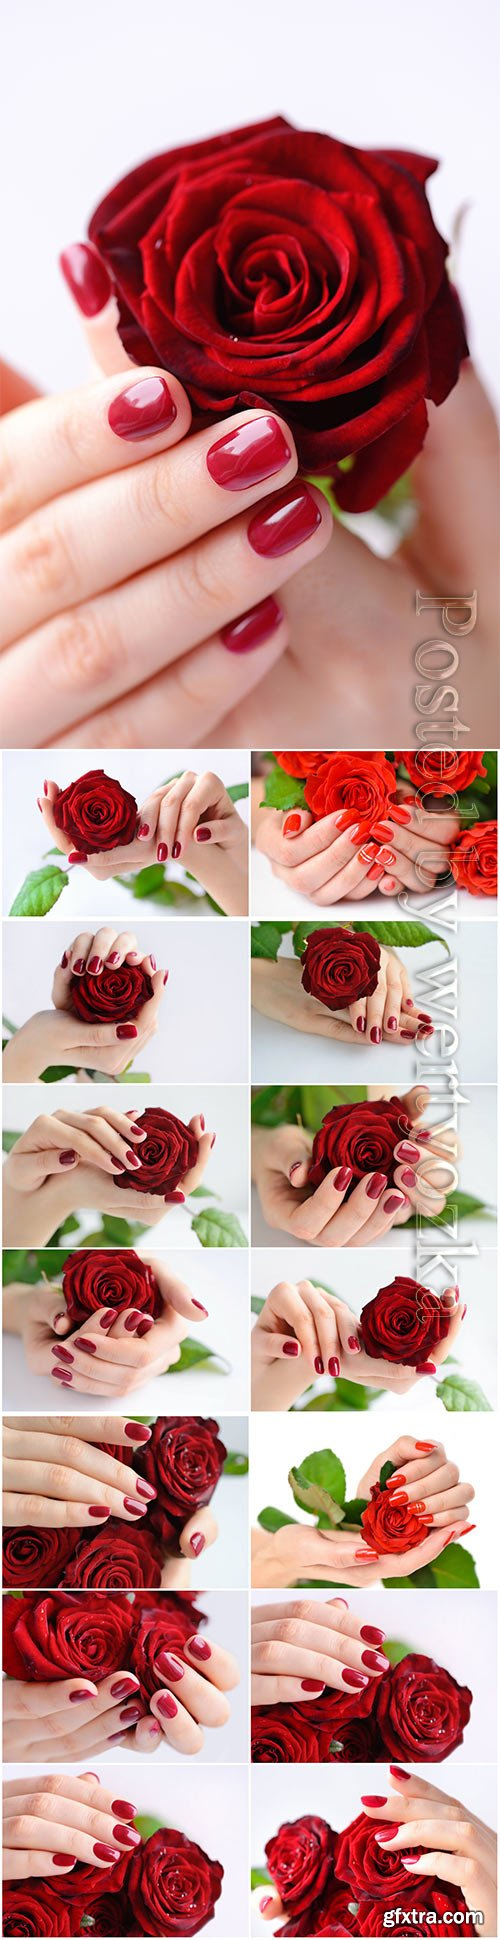 Manicure, female hands with a rose beautiful stock photo